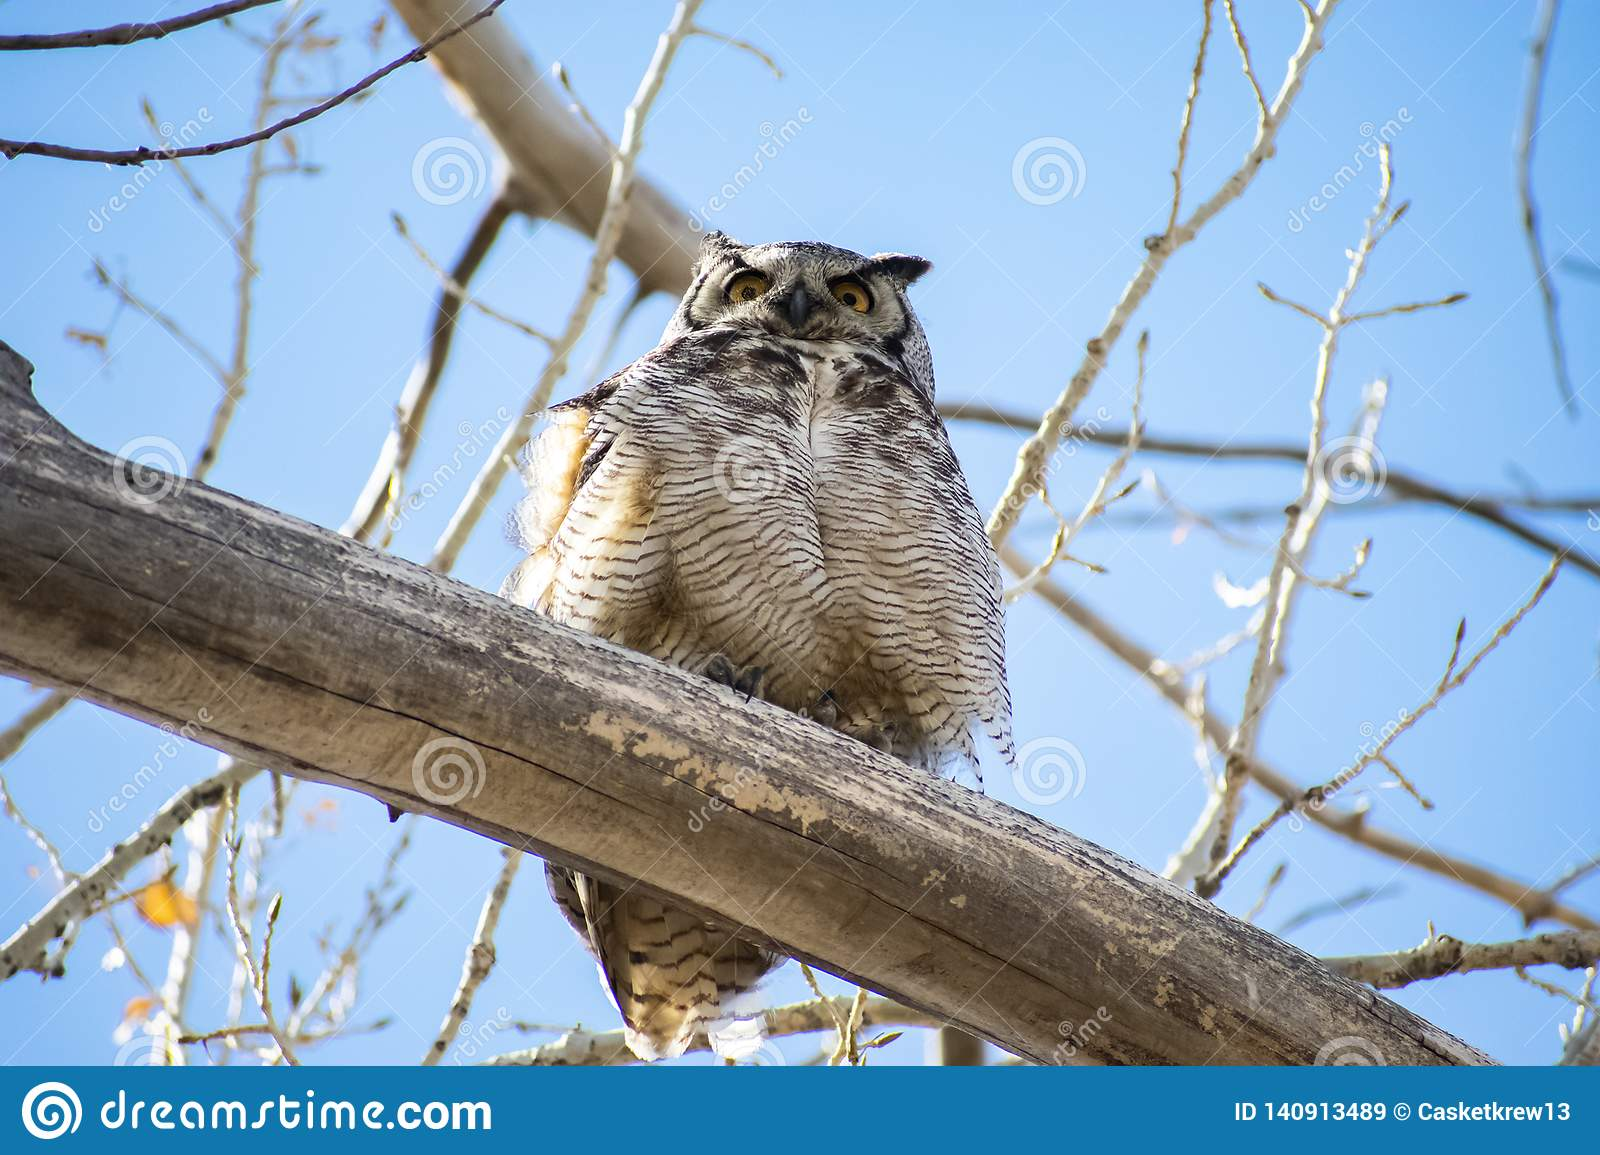 Wise Great Horned Owl in a Tree